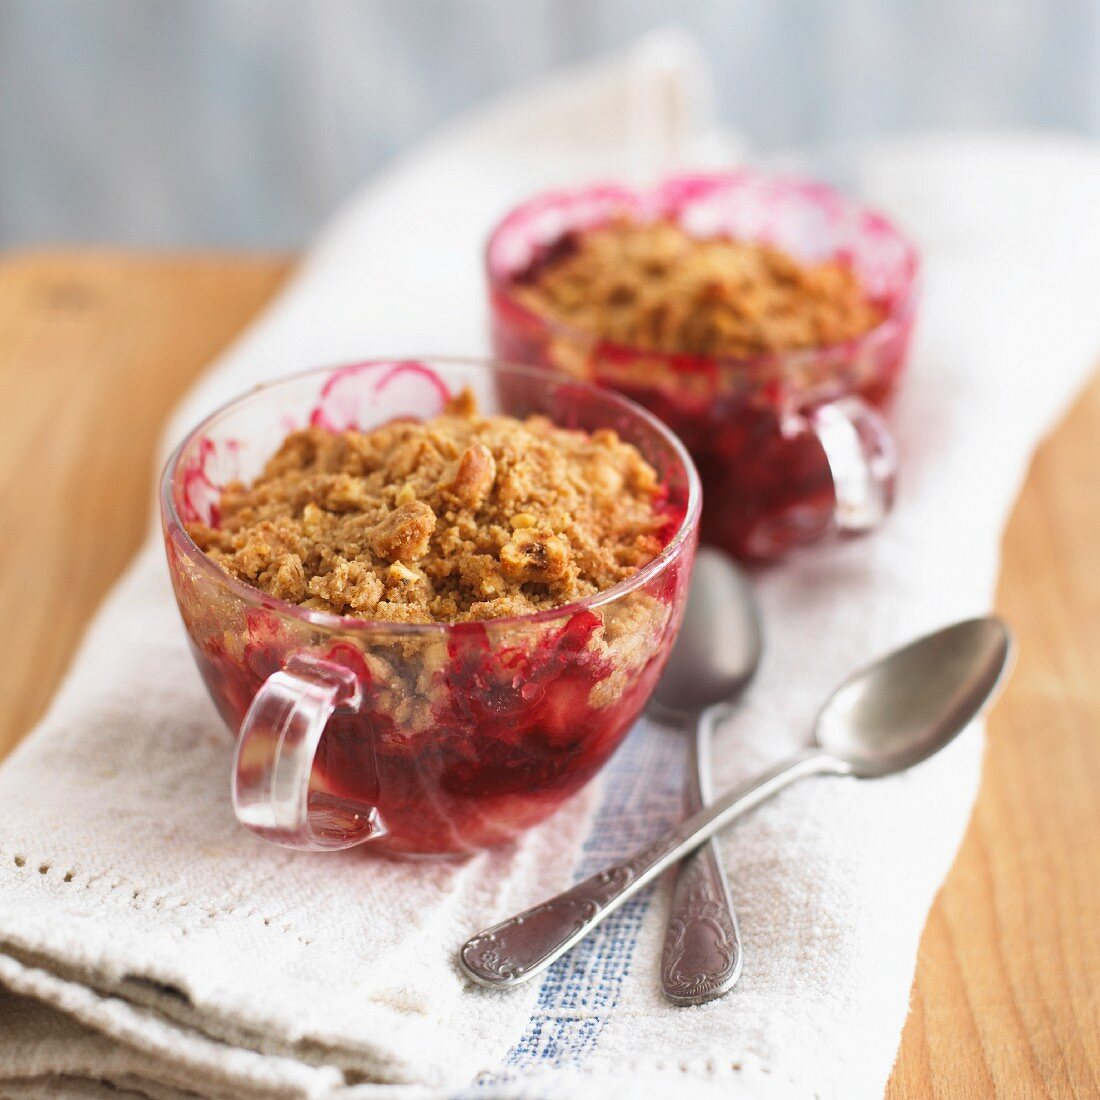 Boysenberry-apple crumbles in glass tea cups